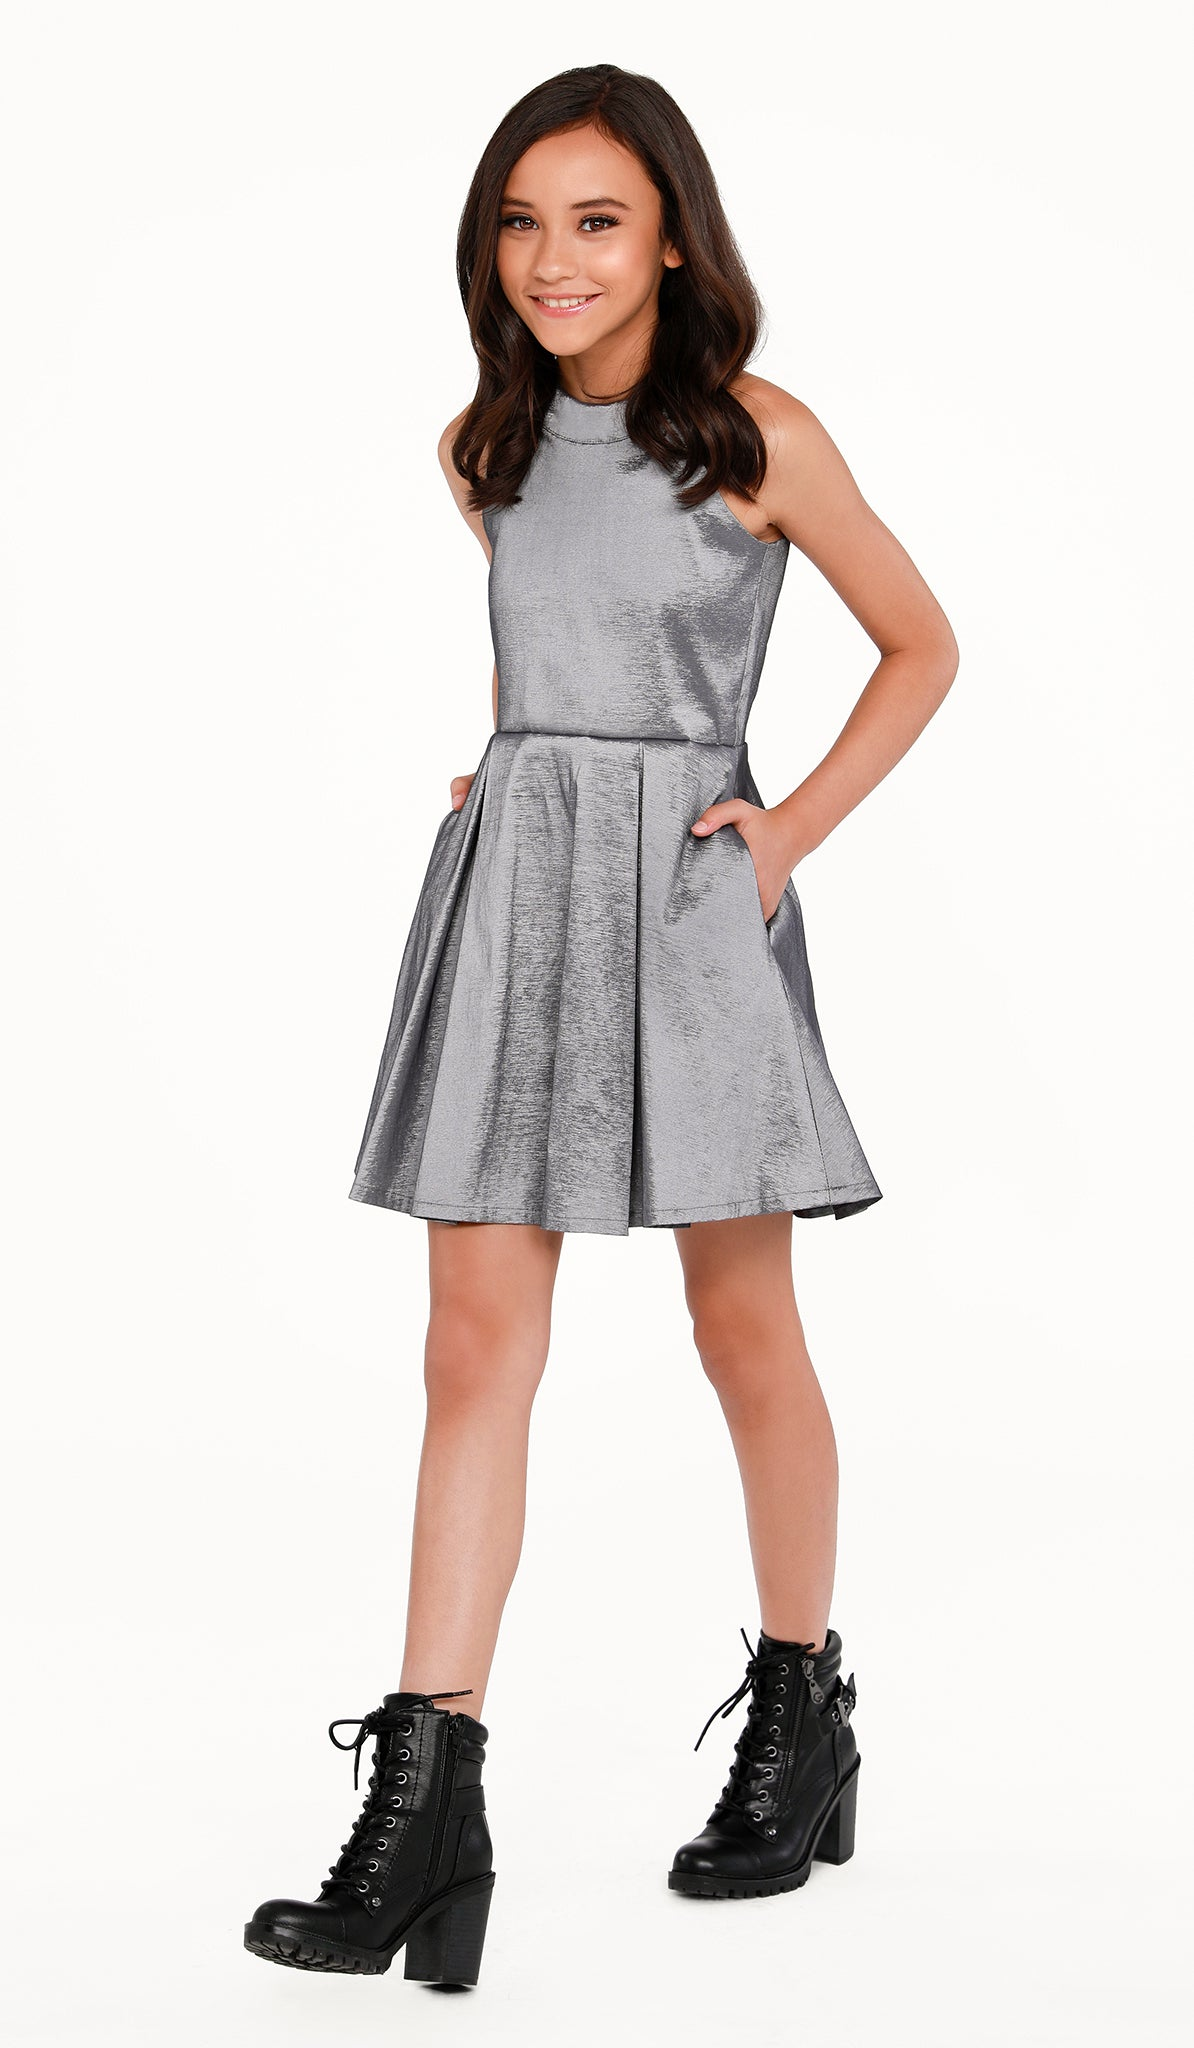 THE PLATINUM POCKET DRESS - Sallymiller.com - [variant title] - | Event & Party Dresses for Tween Girls & Juniors | Weddings Dresses, Bat Mitzvah Dresses, Sweet Sixteen Dresses, Graduation Dresses, Birthday Party Dresses, Bar Mitzvah Dresses, Cotillion Dresses